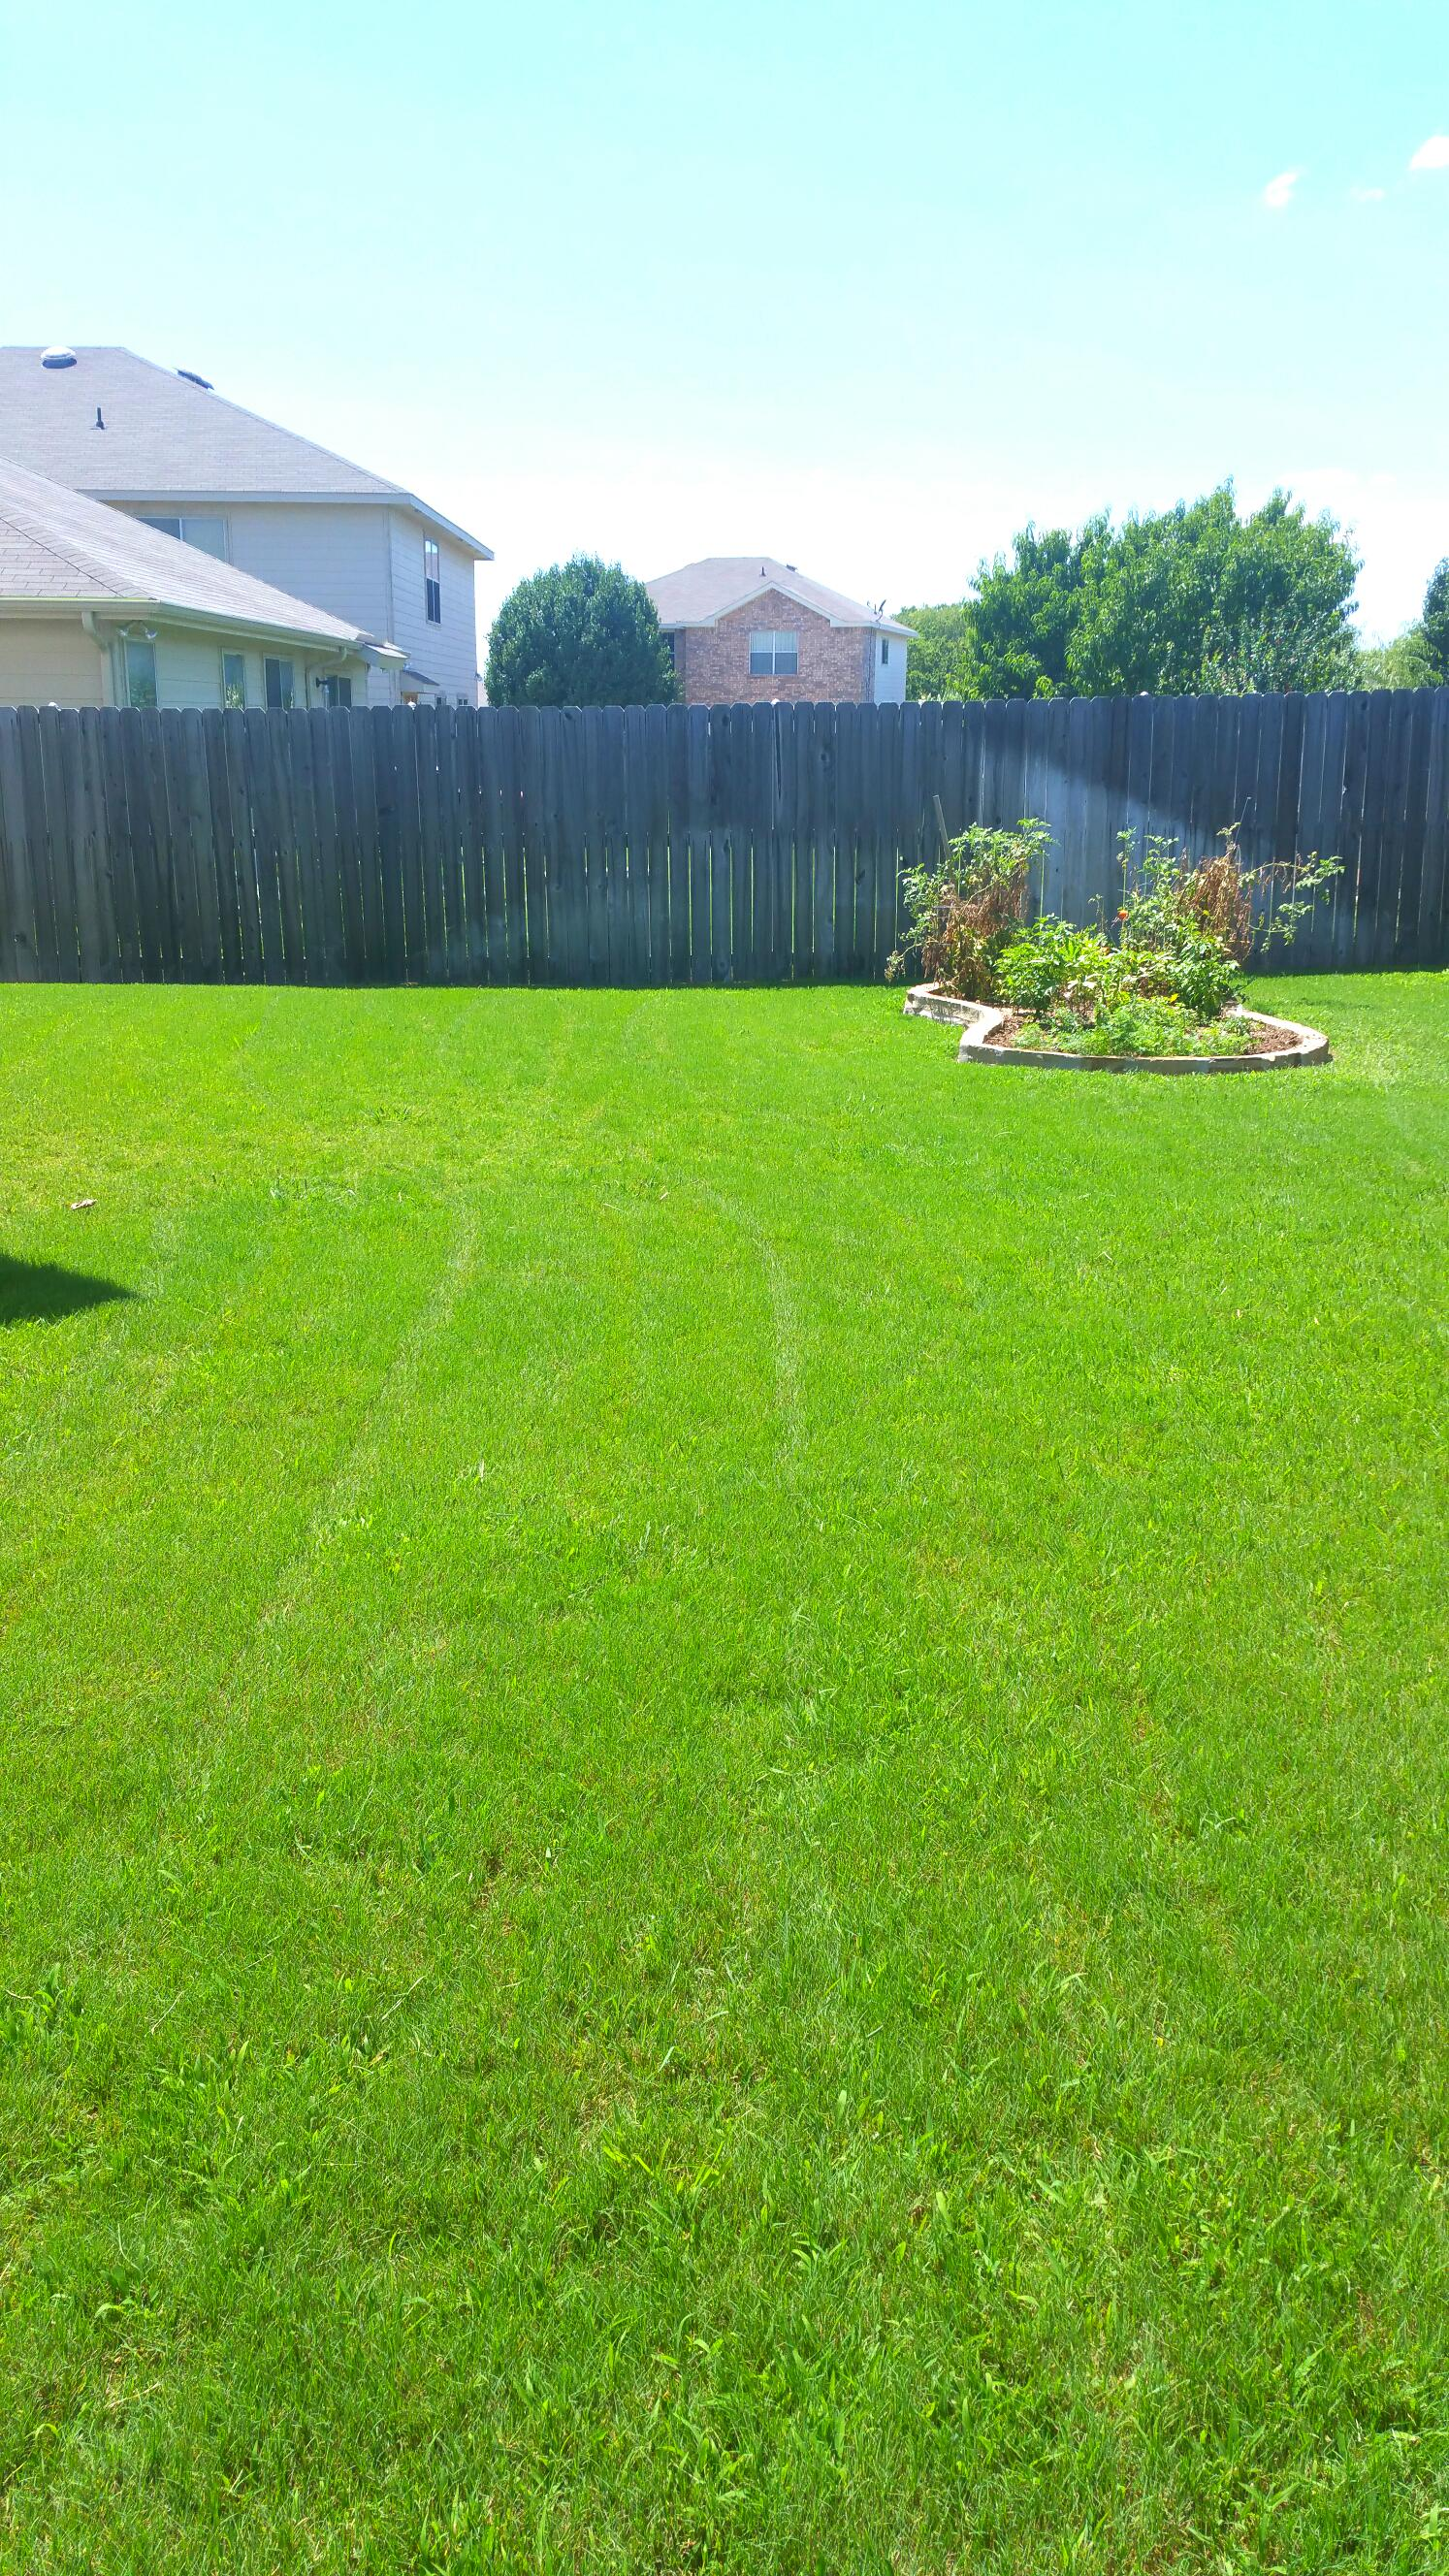 Lawn cut at the right level